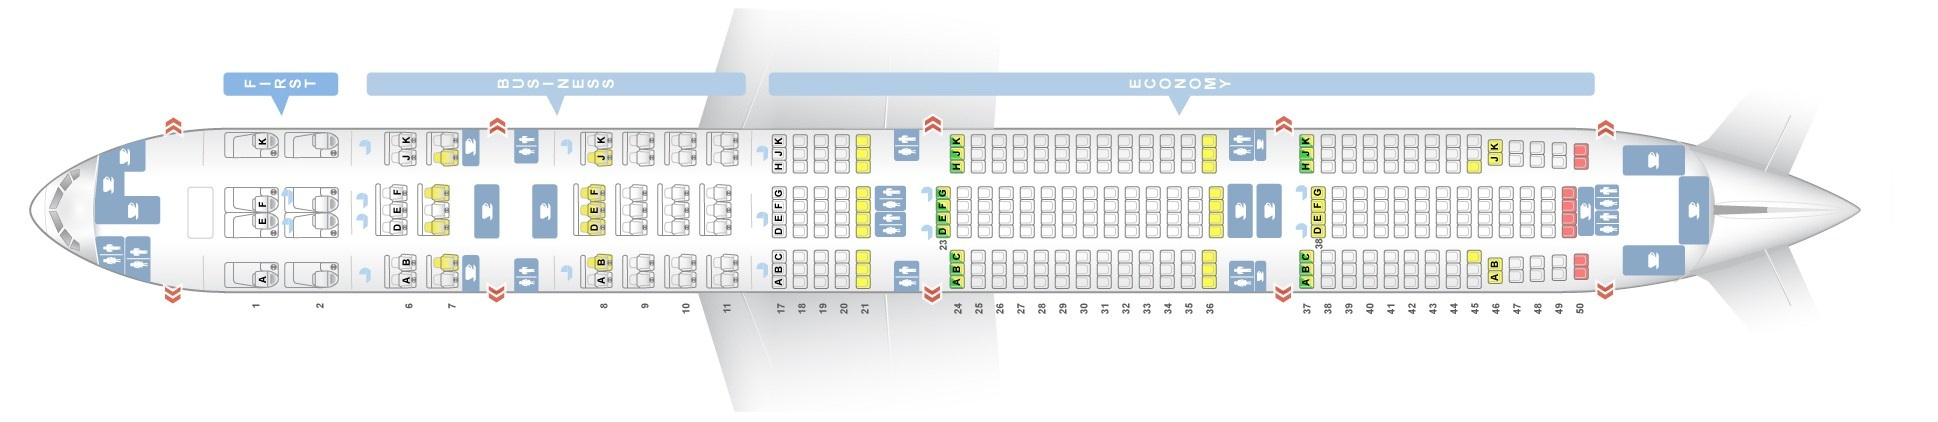 Emirates Boeing 777 Seat Map Brokeasshome Com